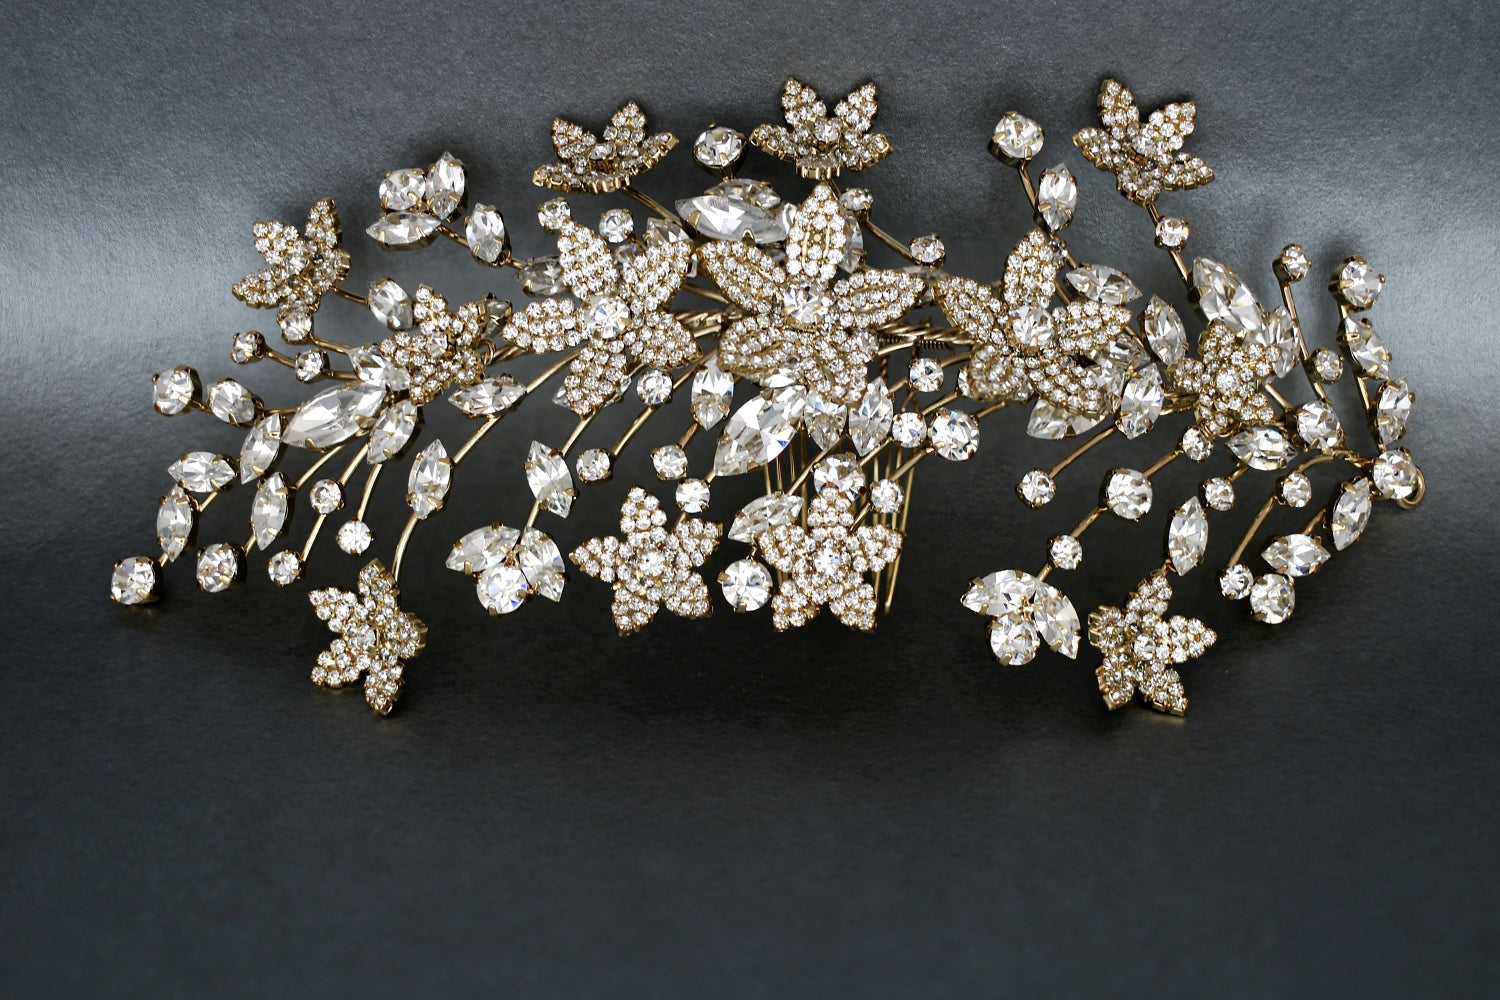 ZARA Swarovski Hair Comb, Wedding Headpiece